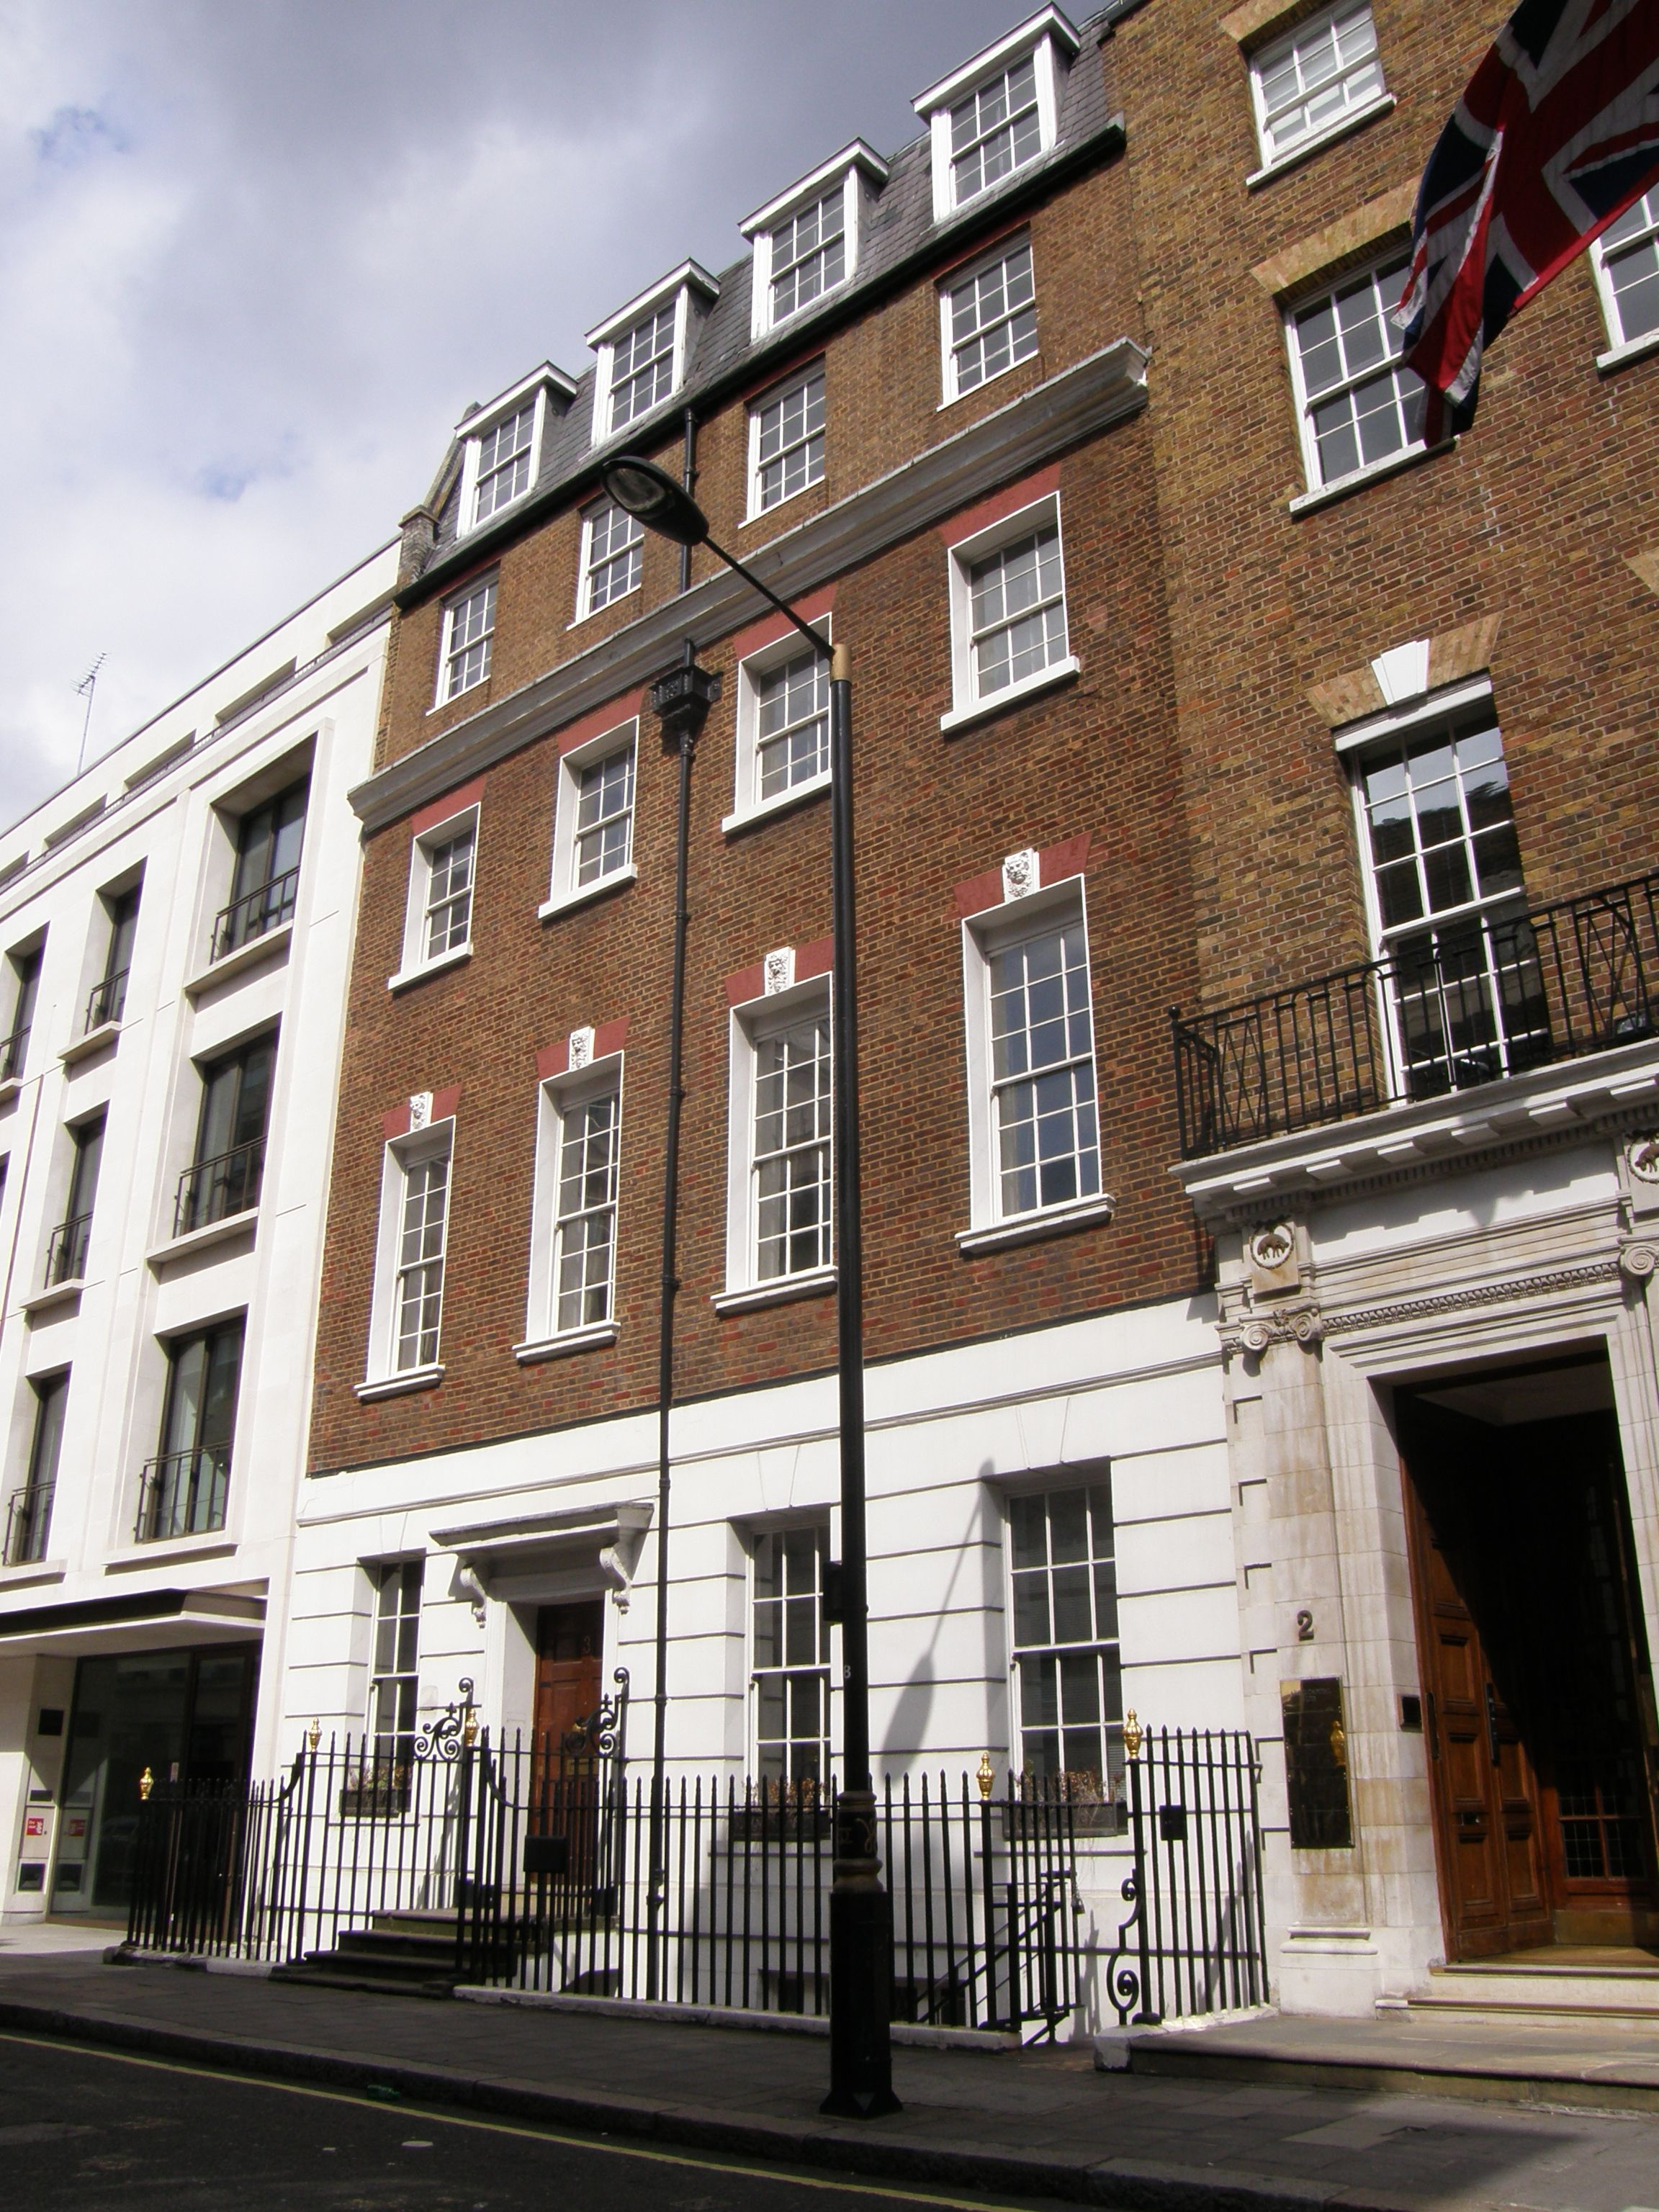 Apple Corps building at 3 Savile Row, site of the Let It Be rooftop concert  | Building, London, Apple corps